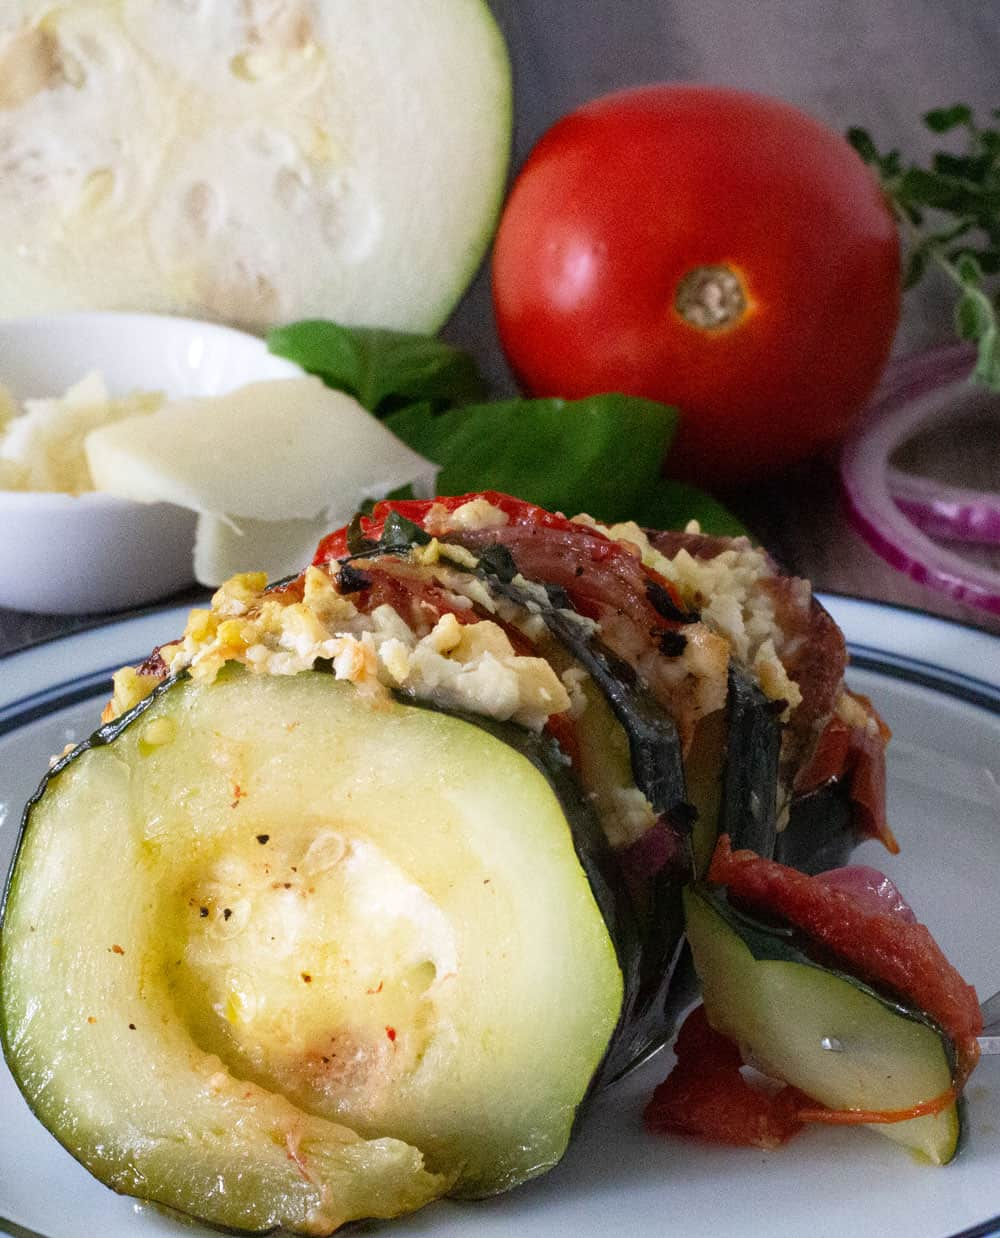 hasselback zucchini with cheese and vegetables in background